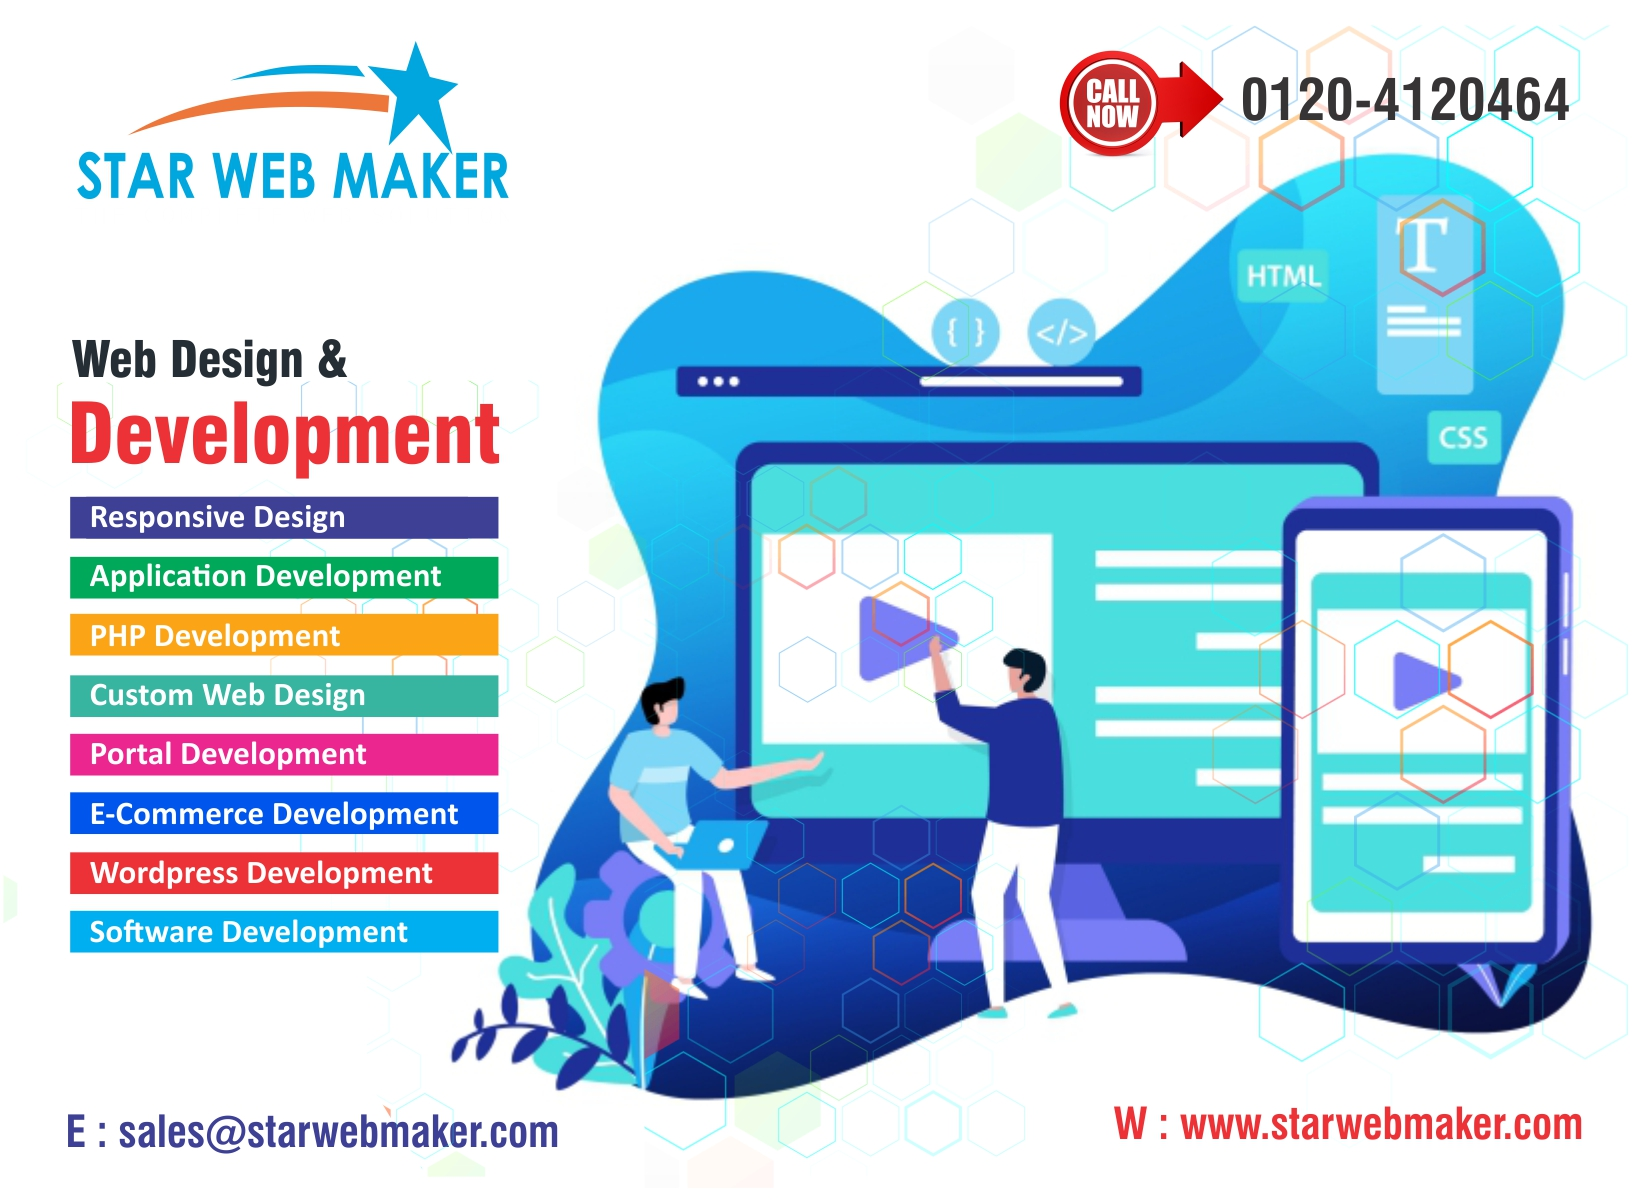 Promote Your Business With Static Web Design Web Design Company In Noida